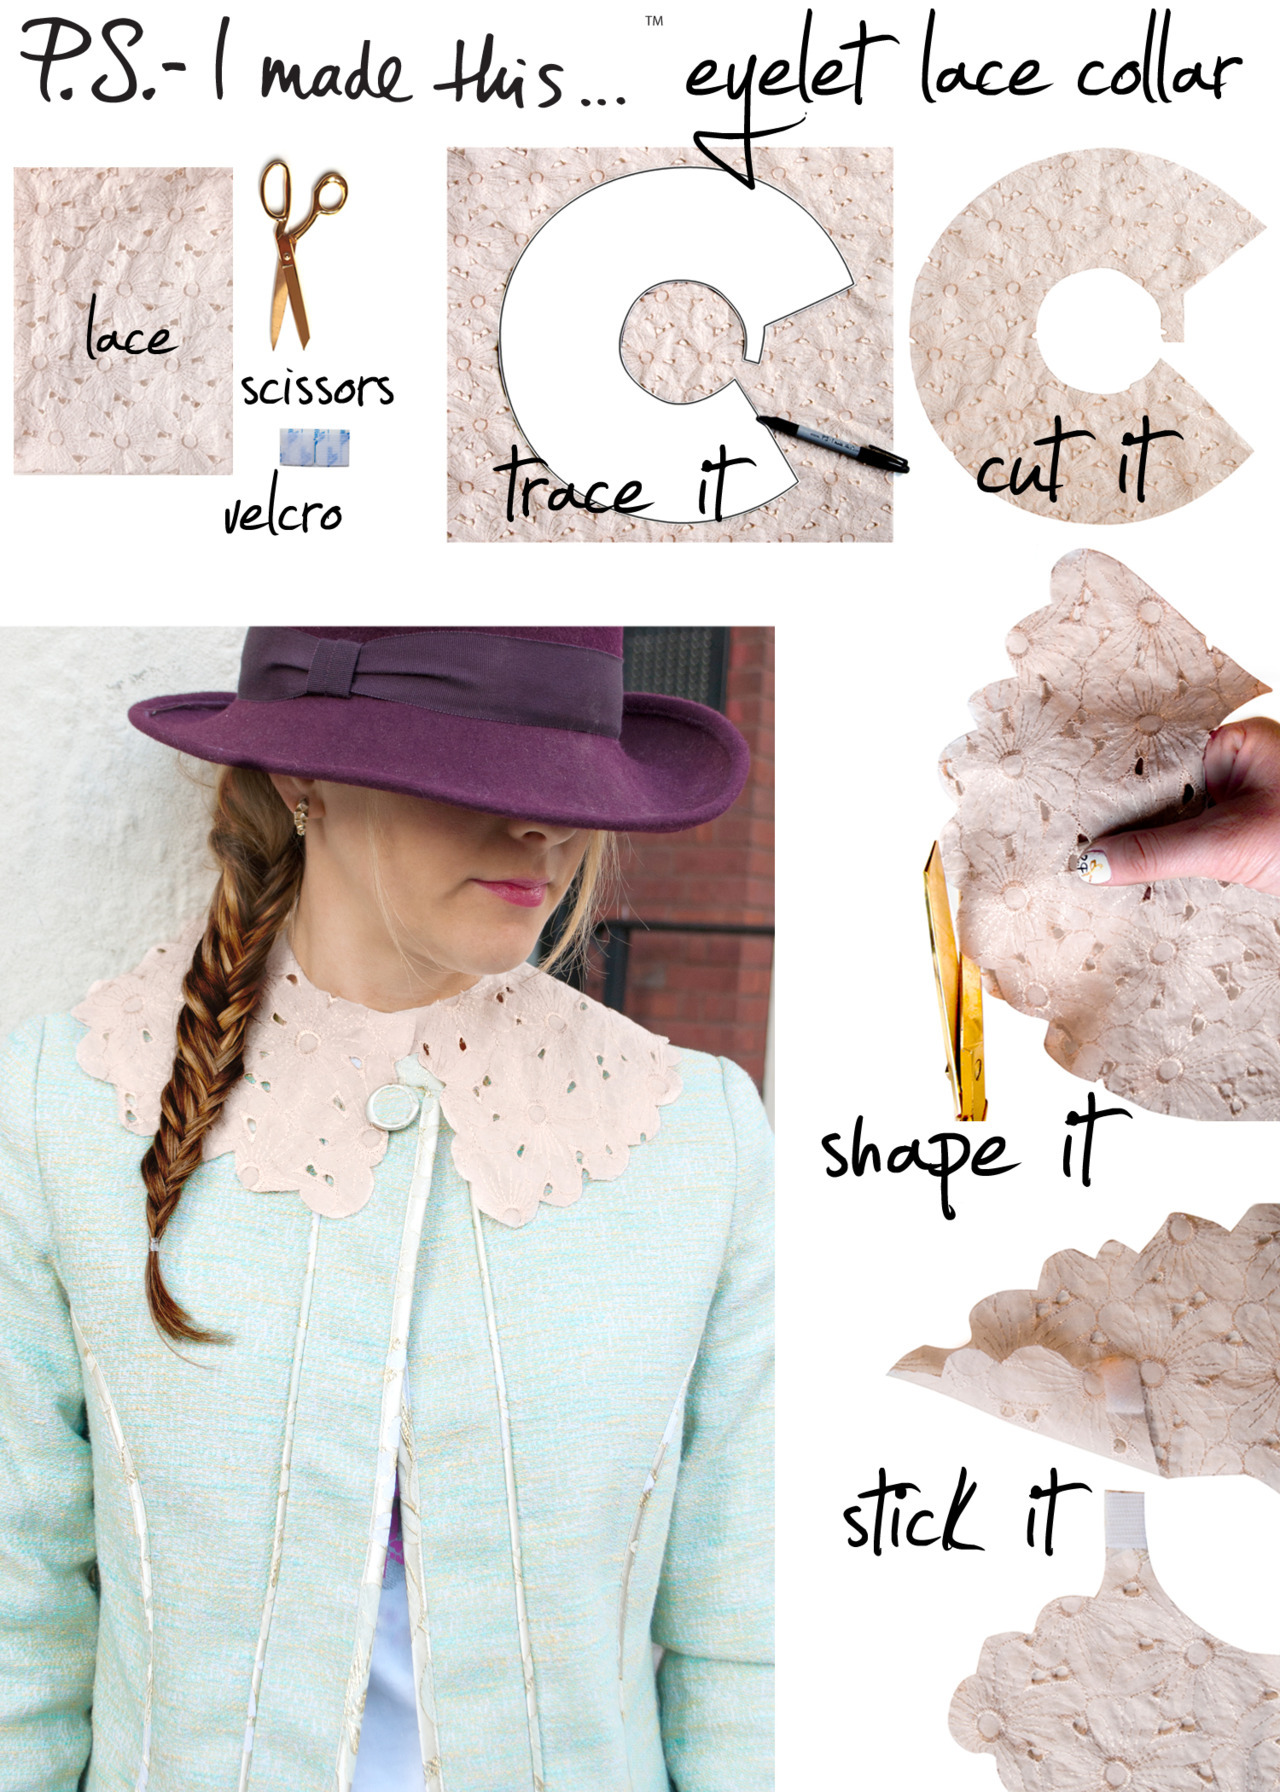 ps-imadethis:  Holler for a lady like collar.  As we gear up for spring,  join the top-notch collar clan a la Louis Vuitton.   Feel ultra femme and fancy free and get inspired with a super sweet DIY.   To create, download the pattern we created for Who What Wear and trace onto eyelet fabric.  Cut out collar silhouette.  Use scissors to create a scalloped edge.  Attach a small piece of Velcro as a closure.  Style with high neck blouses, dresses, or jackets. Get creative with fabrics and colors!